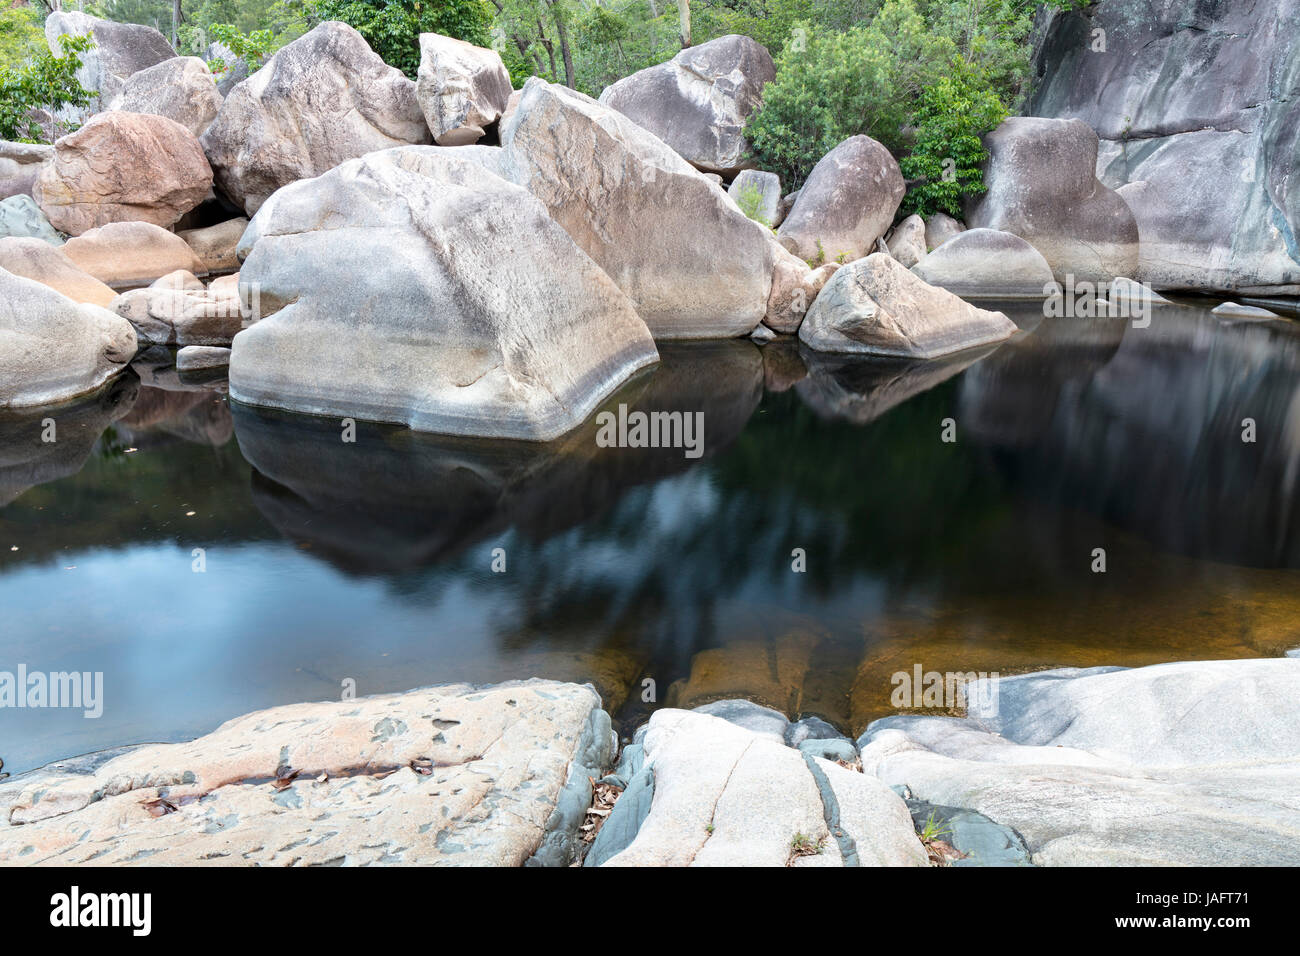 Mafic Intrusion in Granite, Jourama Falls Section, Paluma Range National Park, Queensland, Australia - Stock Image